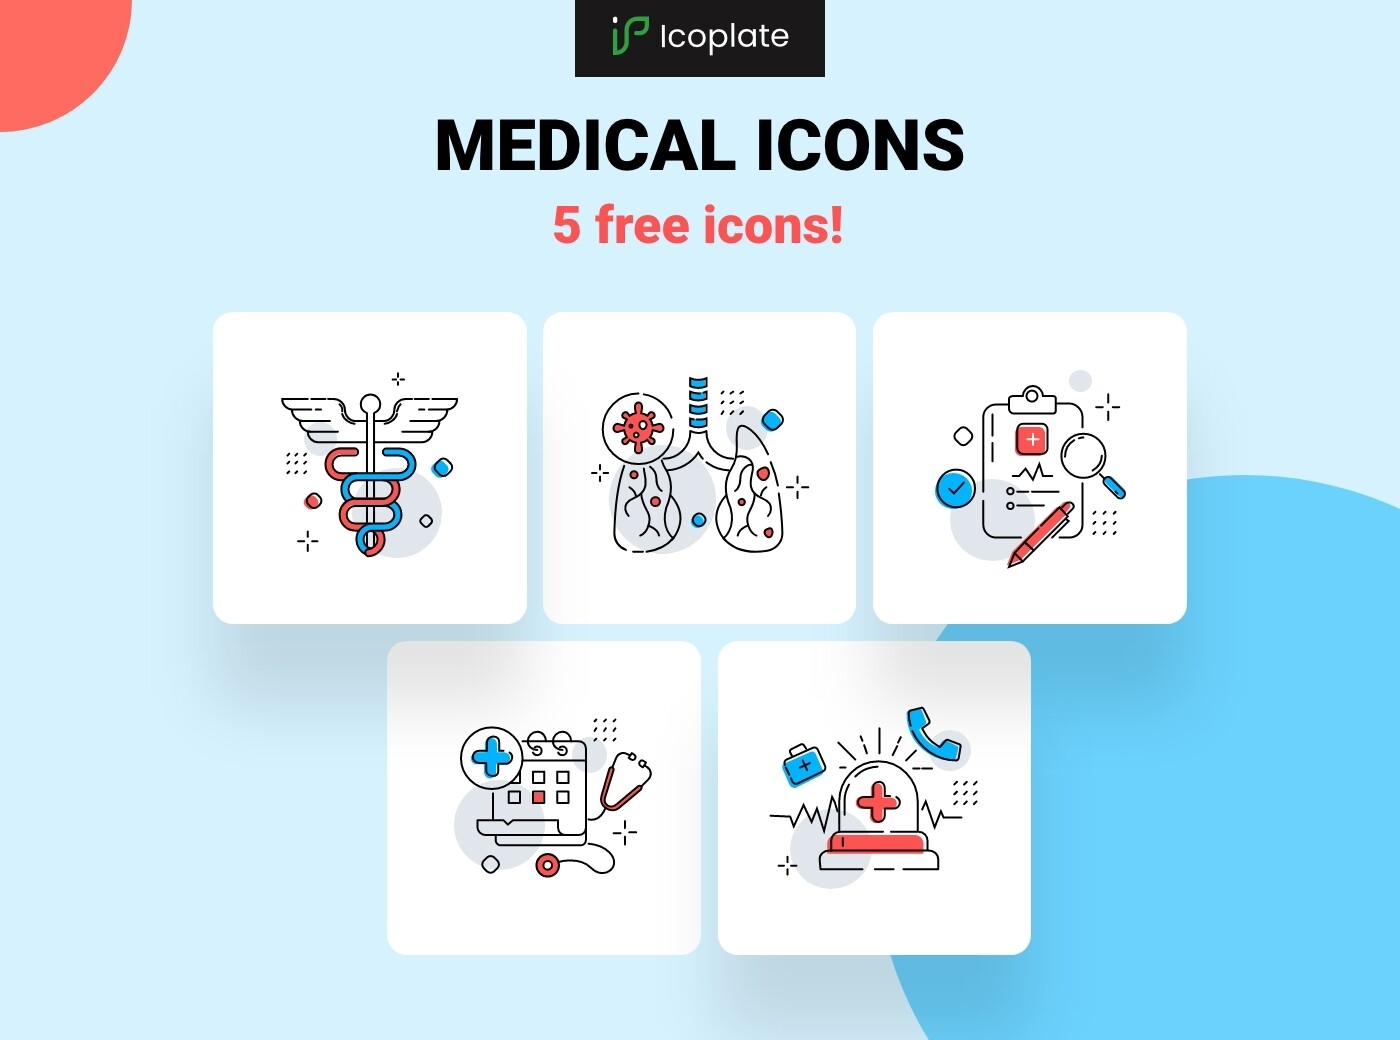 5 Free medical icons